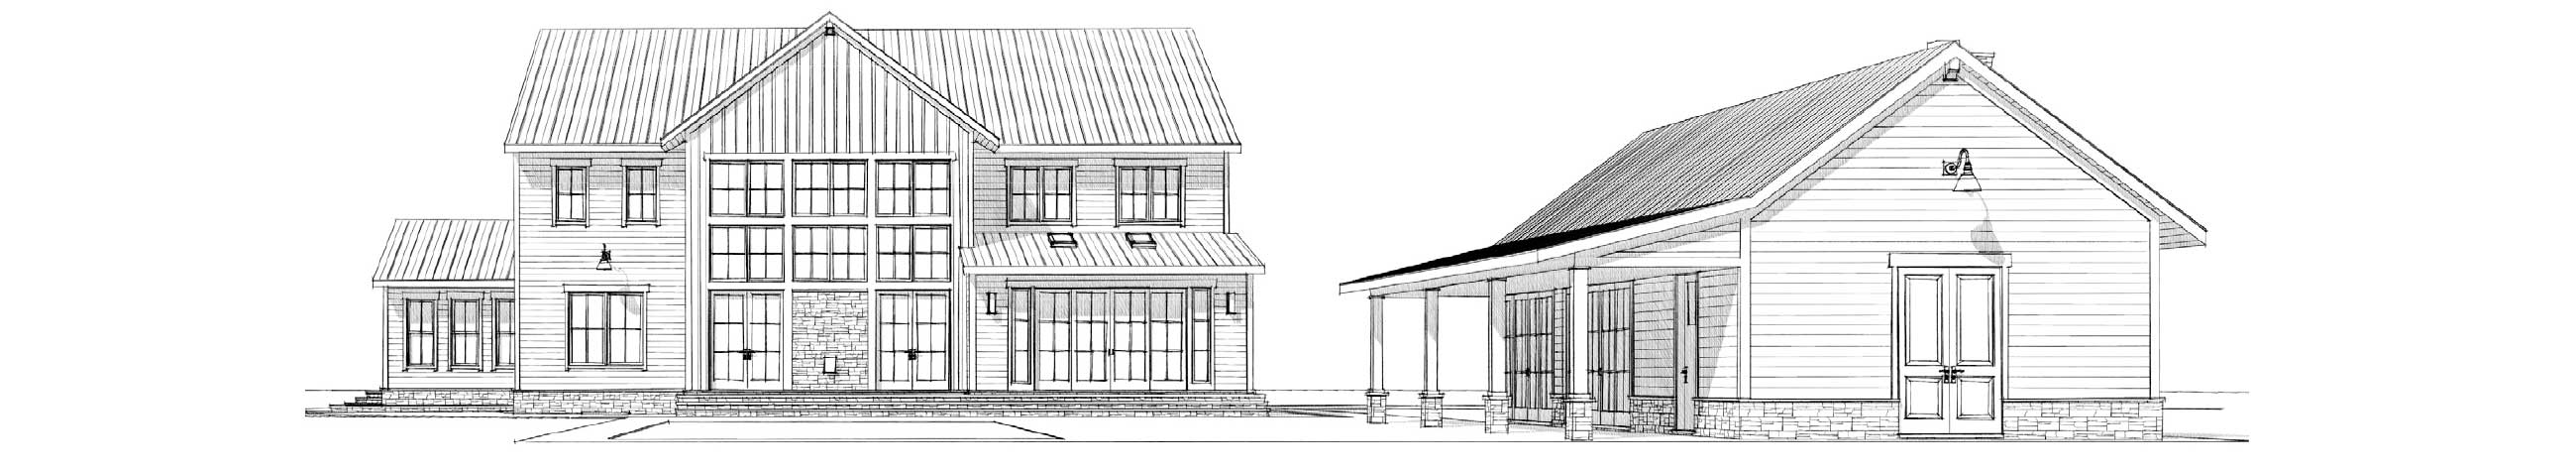 Architectural drawing of the rear exterior of a modern farmhouse style home.